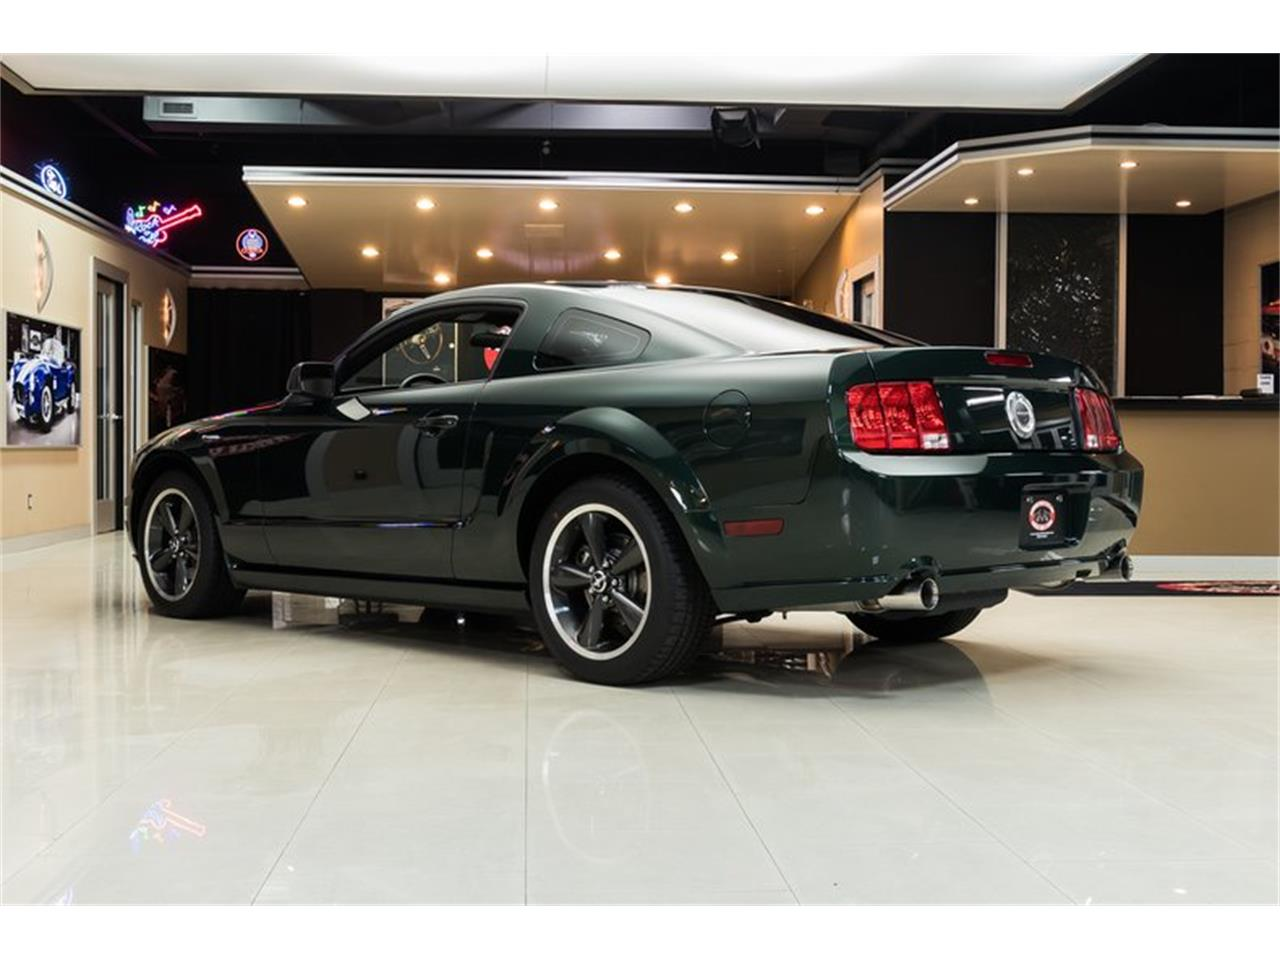 Large Picture Of 08 Mustang Pqap